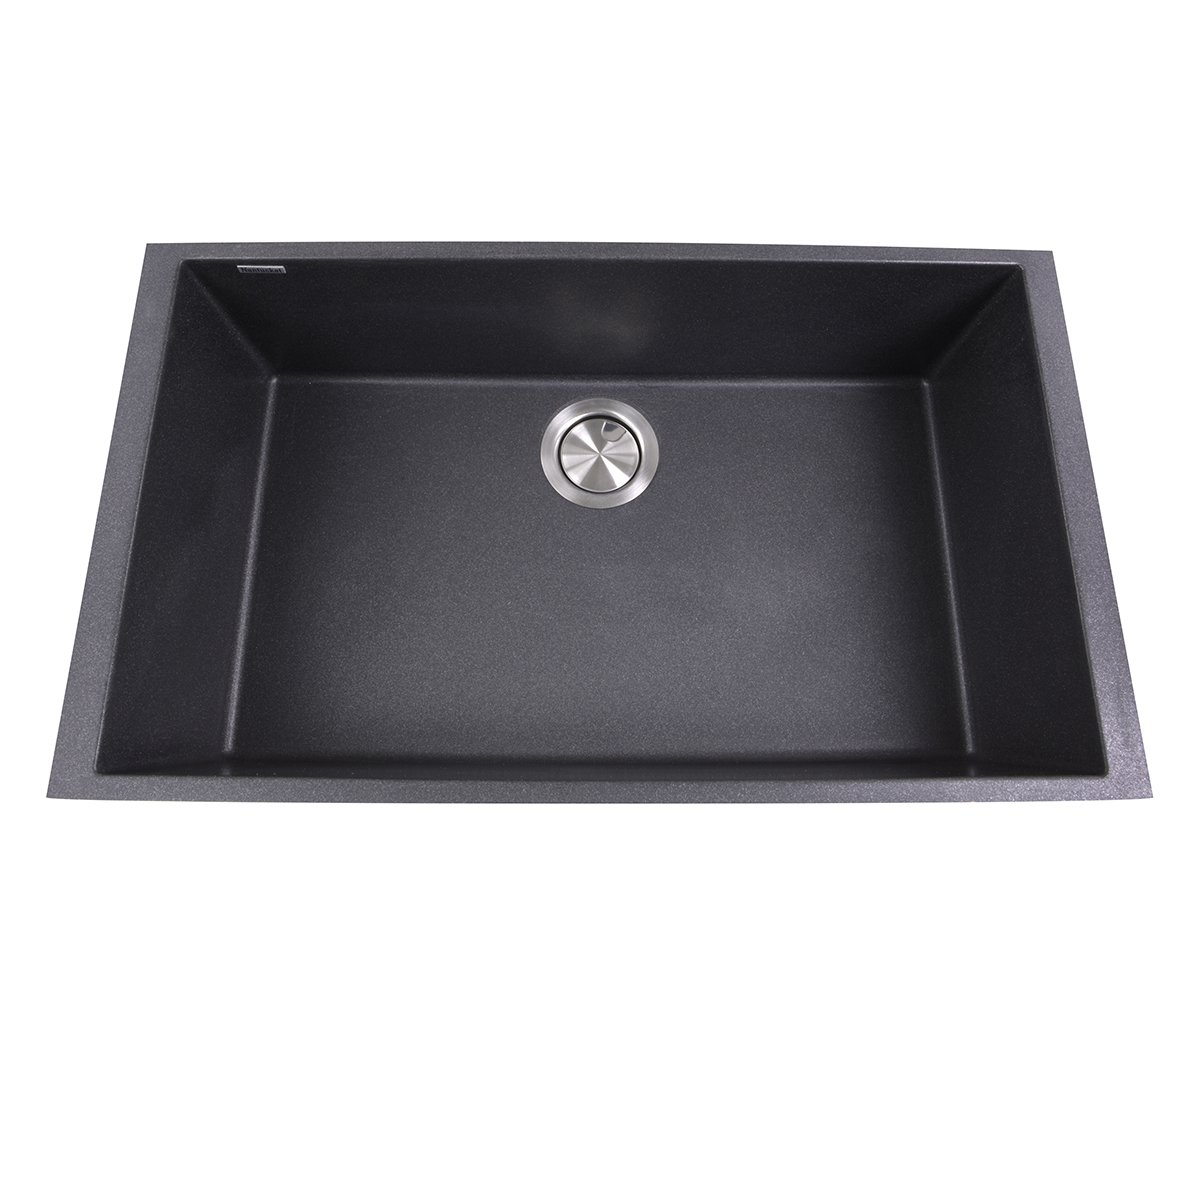 Nantucket Sinks PR3018-BL Single Bowl Undermount Granite Composite Sink, Large, Black